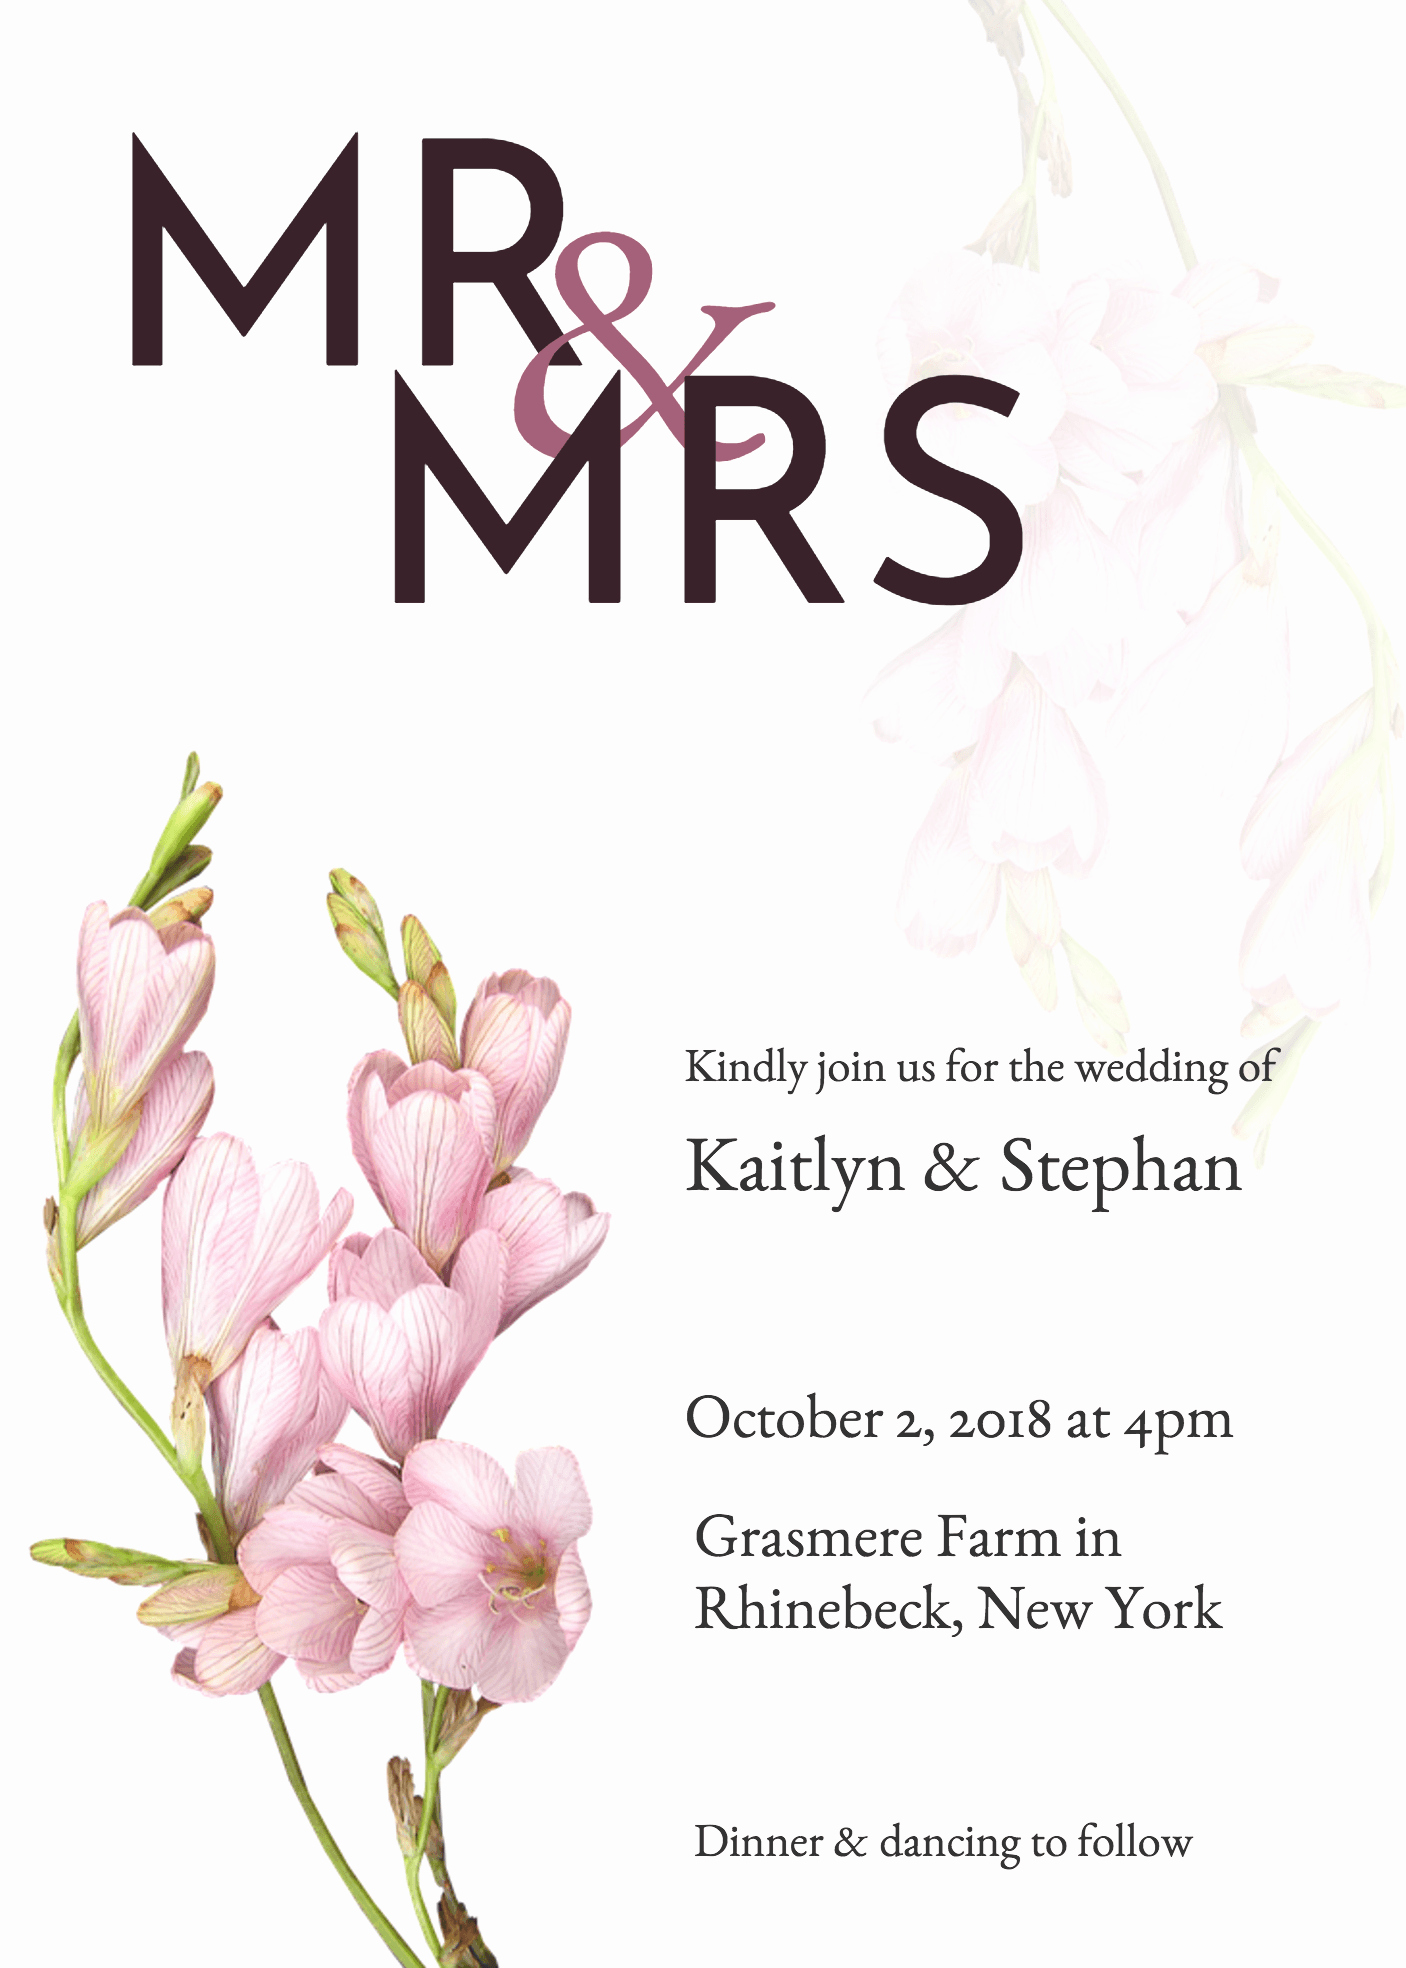 Bridal Shower Invite Template Lovely 19 Diy Bridal Shower and Wedding Invitation Templates